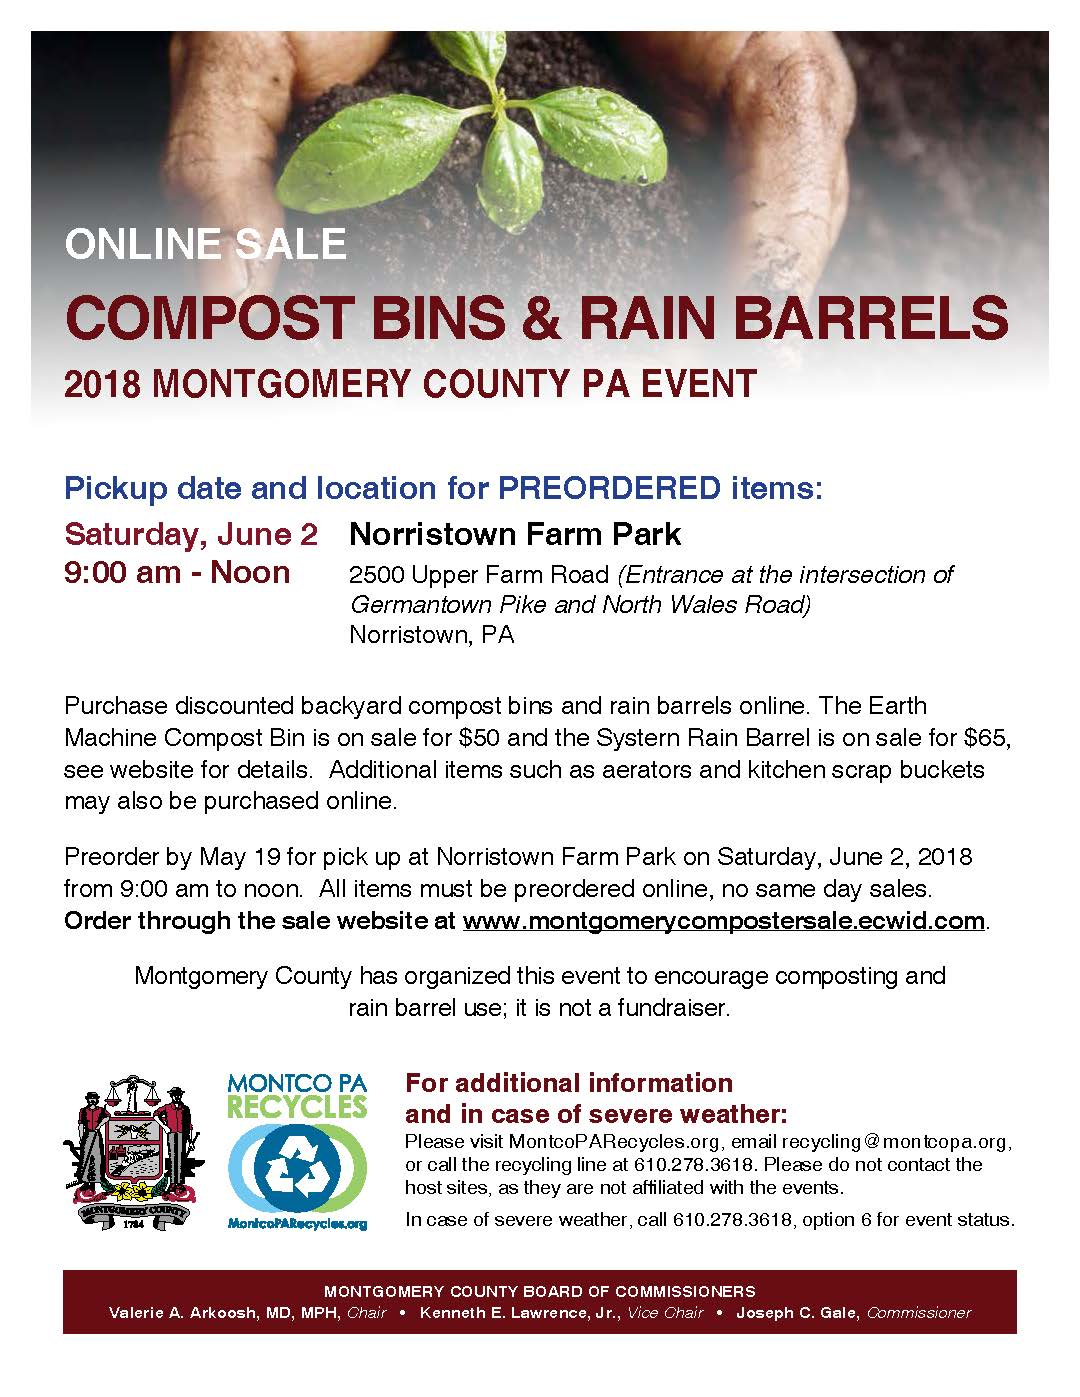 Compost Bin and Rain Barrel Sale Flyer_Jan2018_Web_Page_1